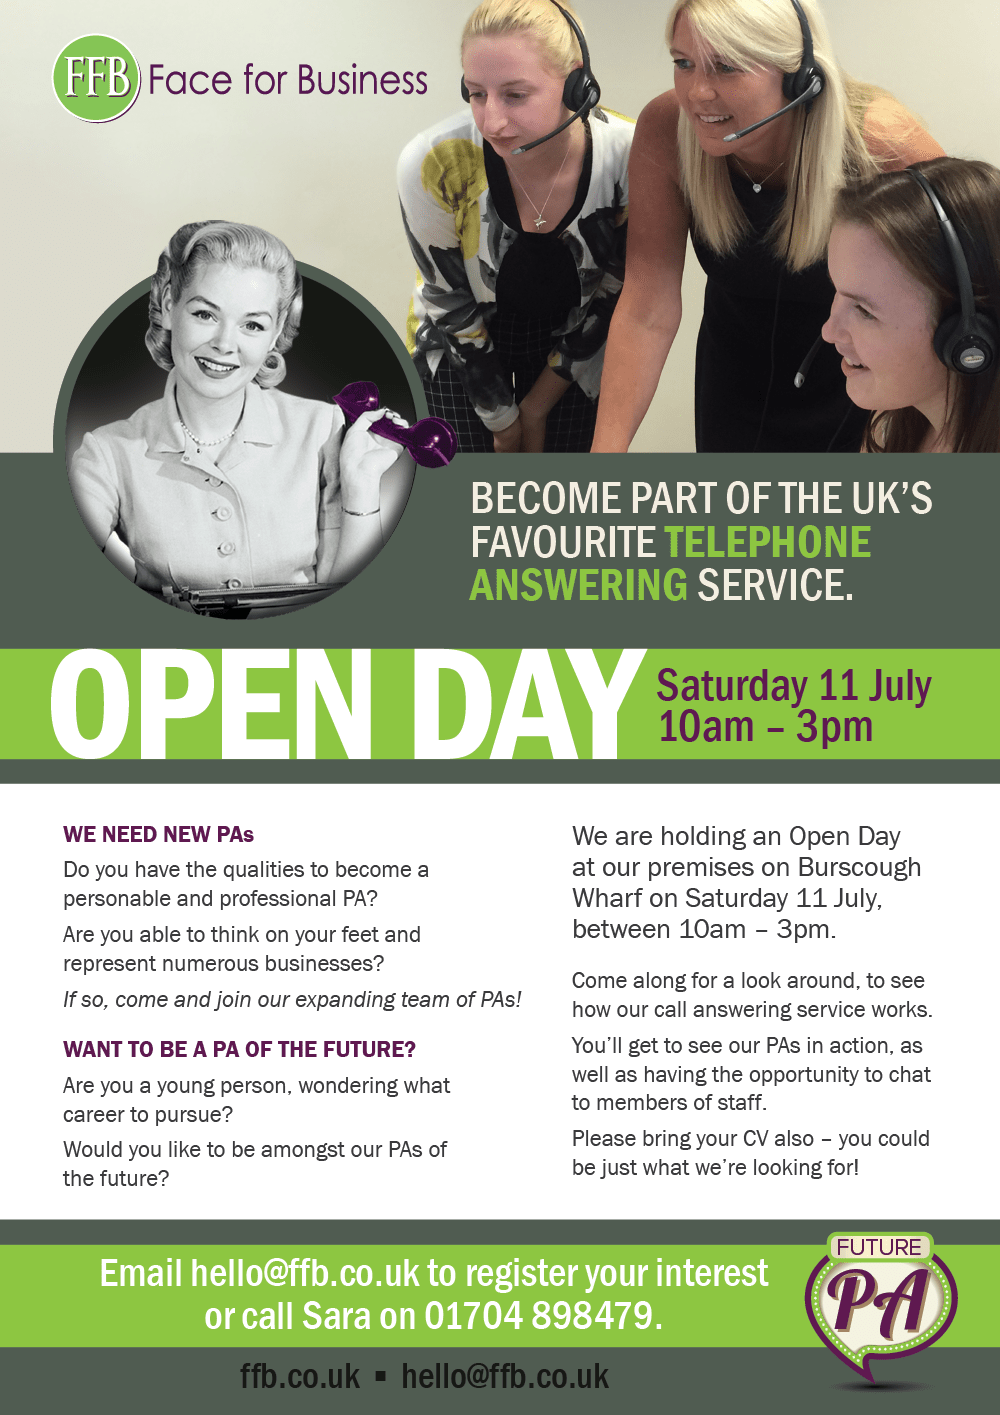 FFB openday